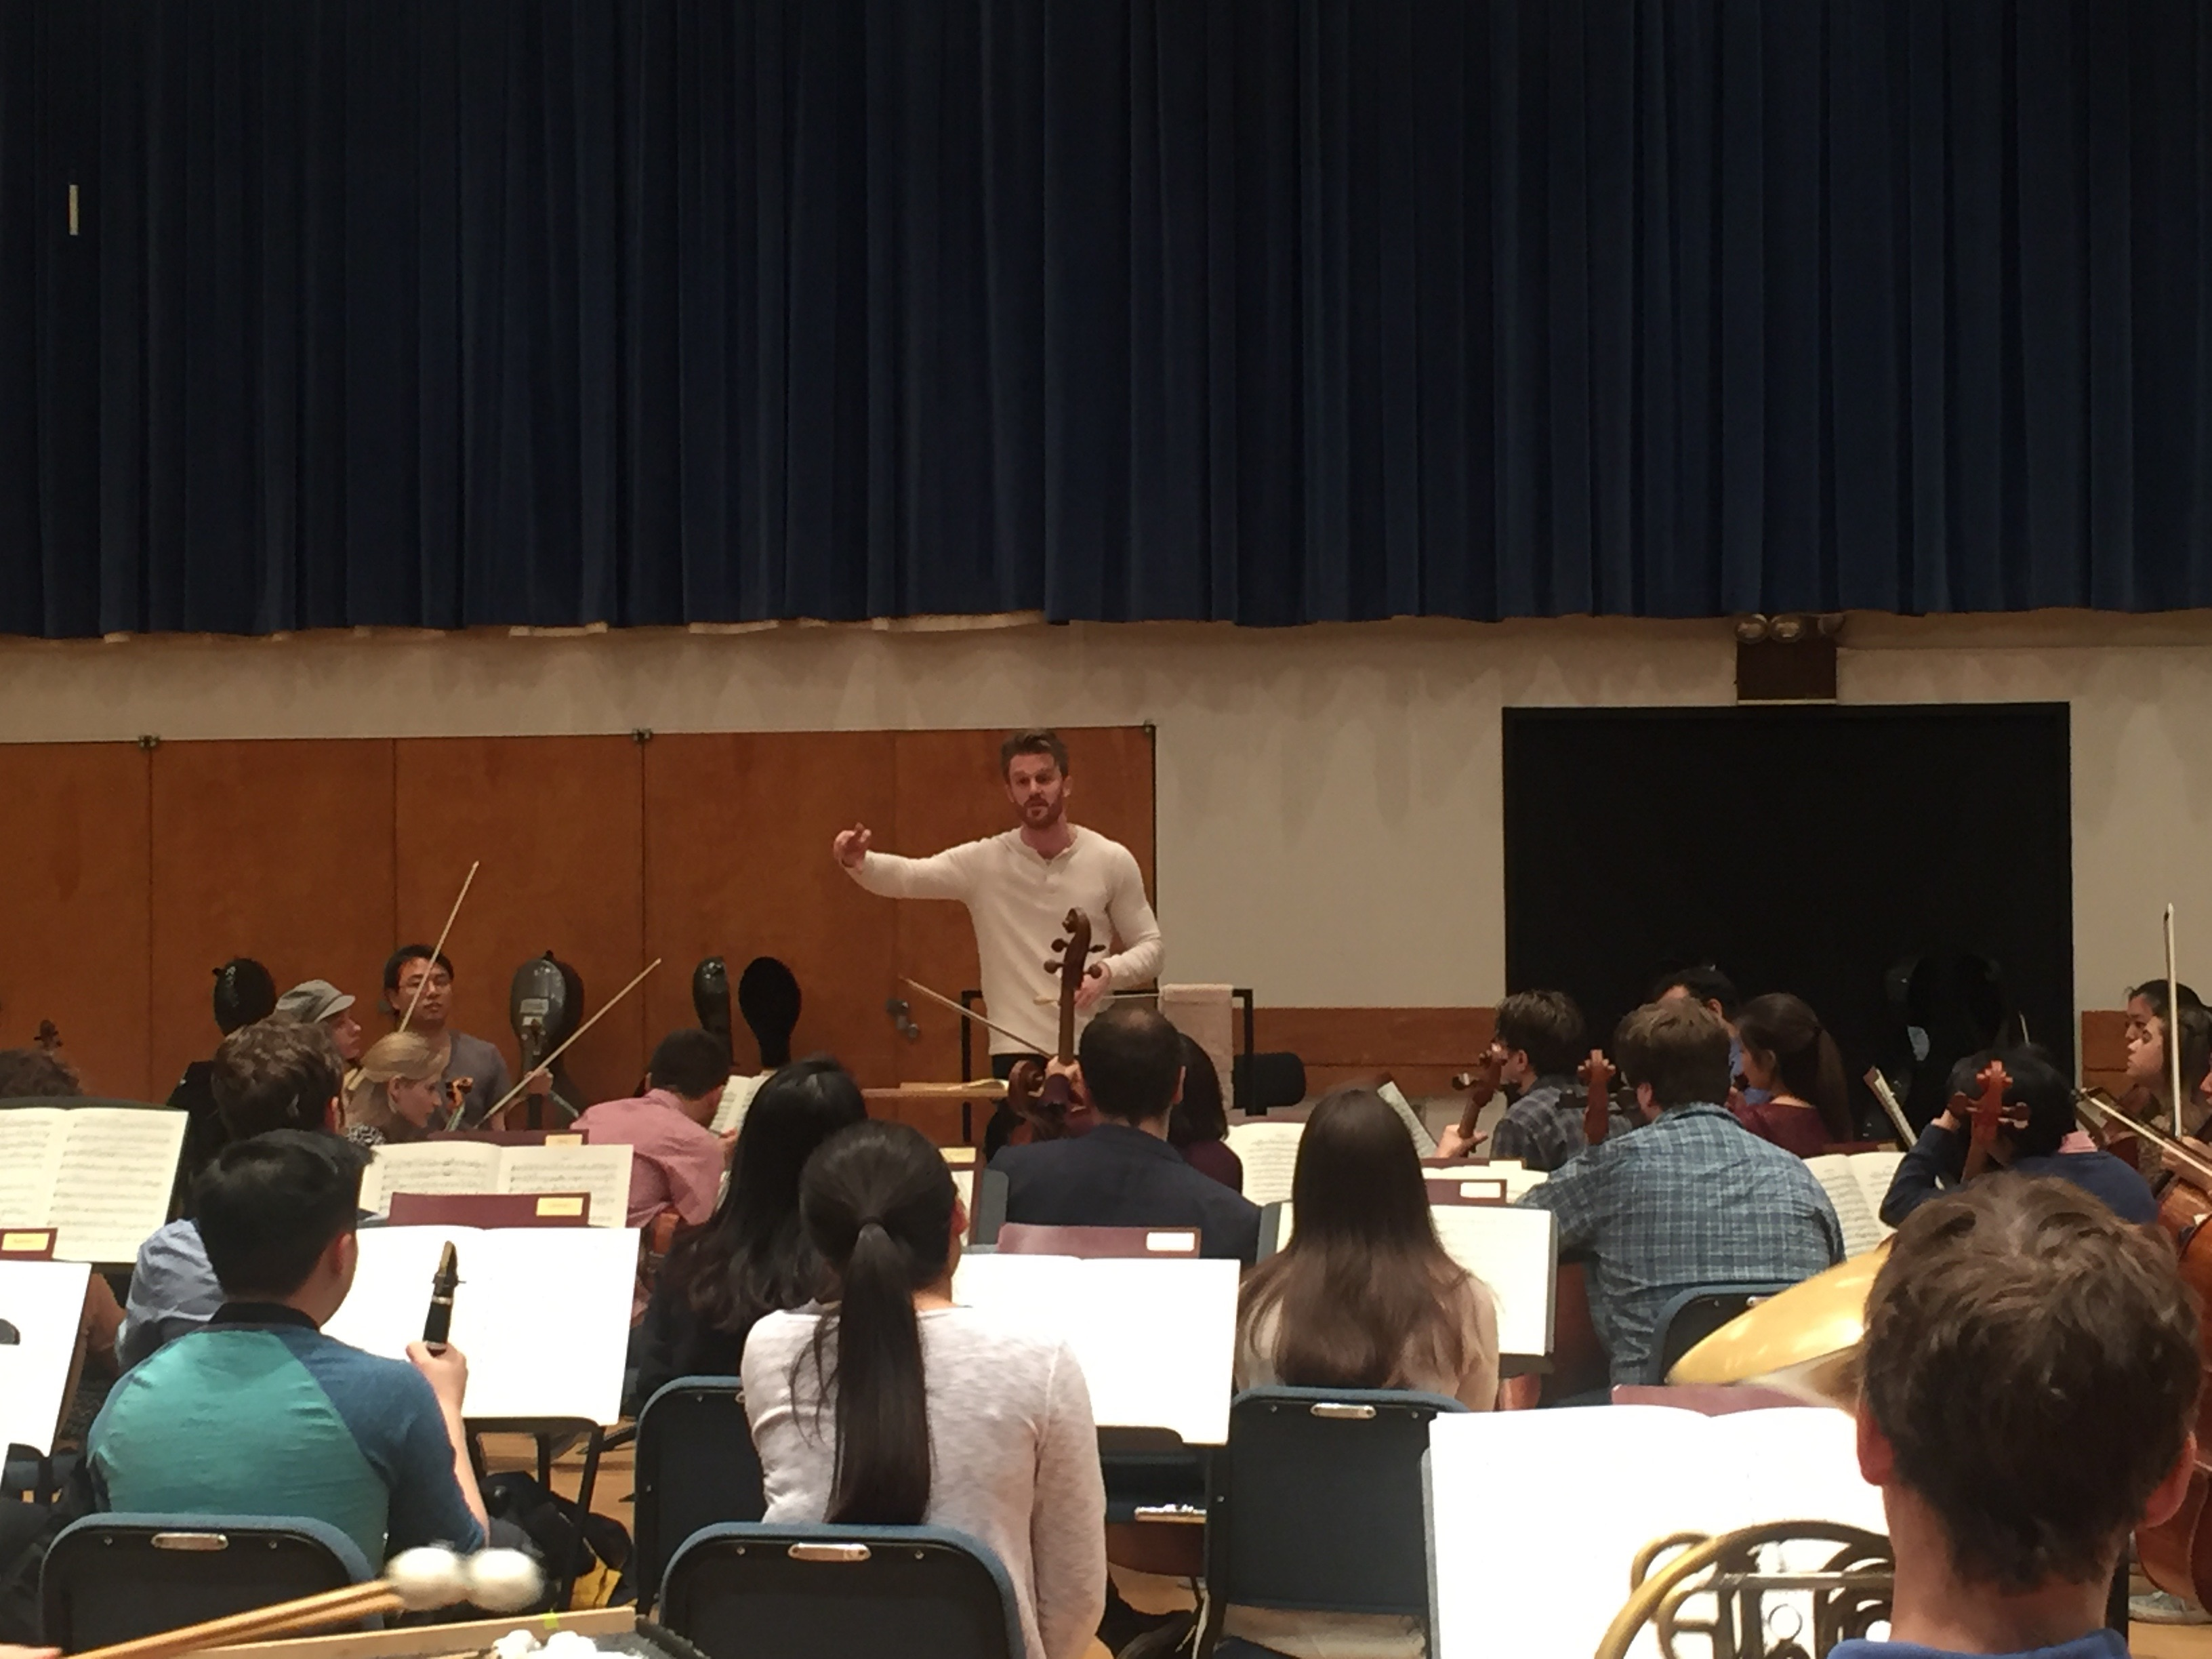 Rehearsing the Juilliard Orchestra